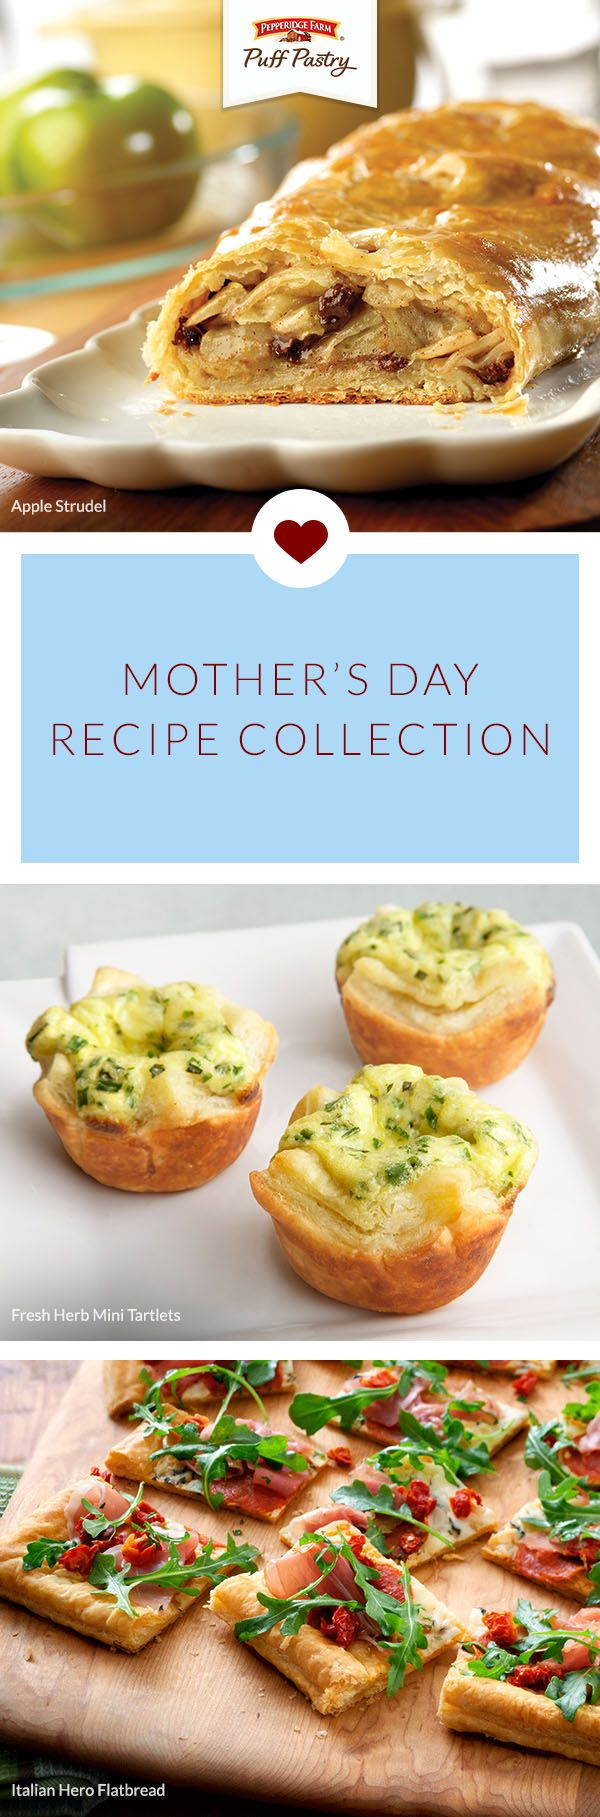 293 Best Easter Images On Pinterest Activities For Kids Baby Wiring Money Publix Pepperidge Farm Puff Pastry Mothers Day Recipe Collection Is Just Around The Corner